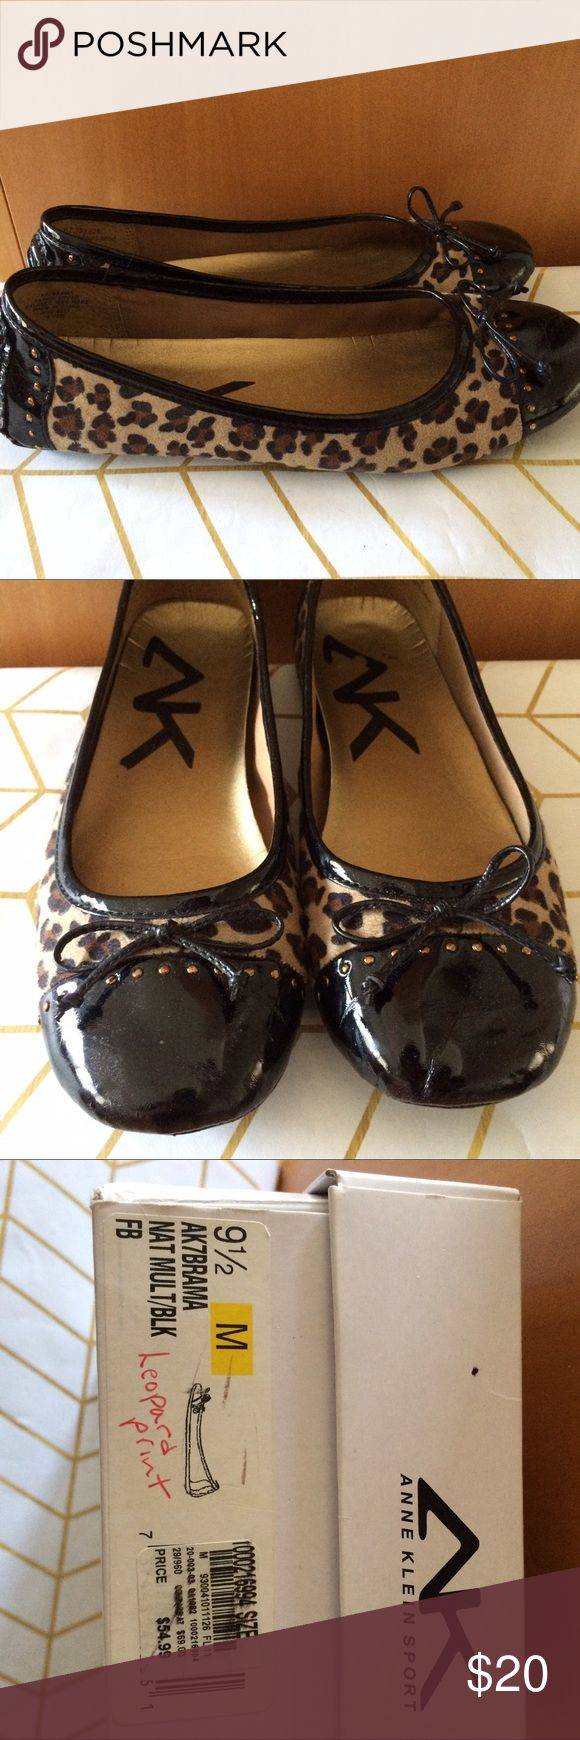 Anne Klein Leopard Flat, 9.5M Anne Klein Leopard Ballet Flat, 9.5M. Black patent leather, bow front and gold round stud detailing. Some creasing to front, pictured. Ships with box. Worn just a few times. Anne Klein Shoes Flats & Loafers